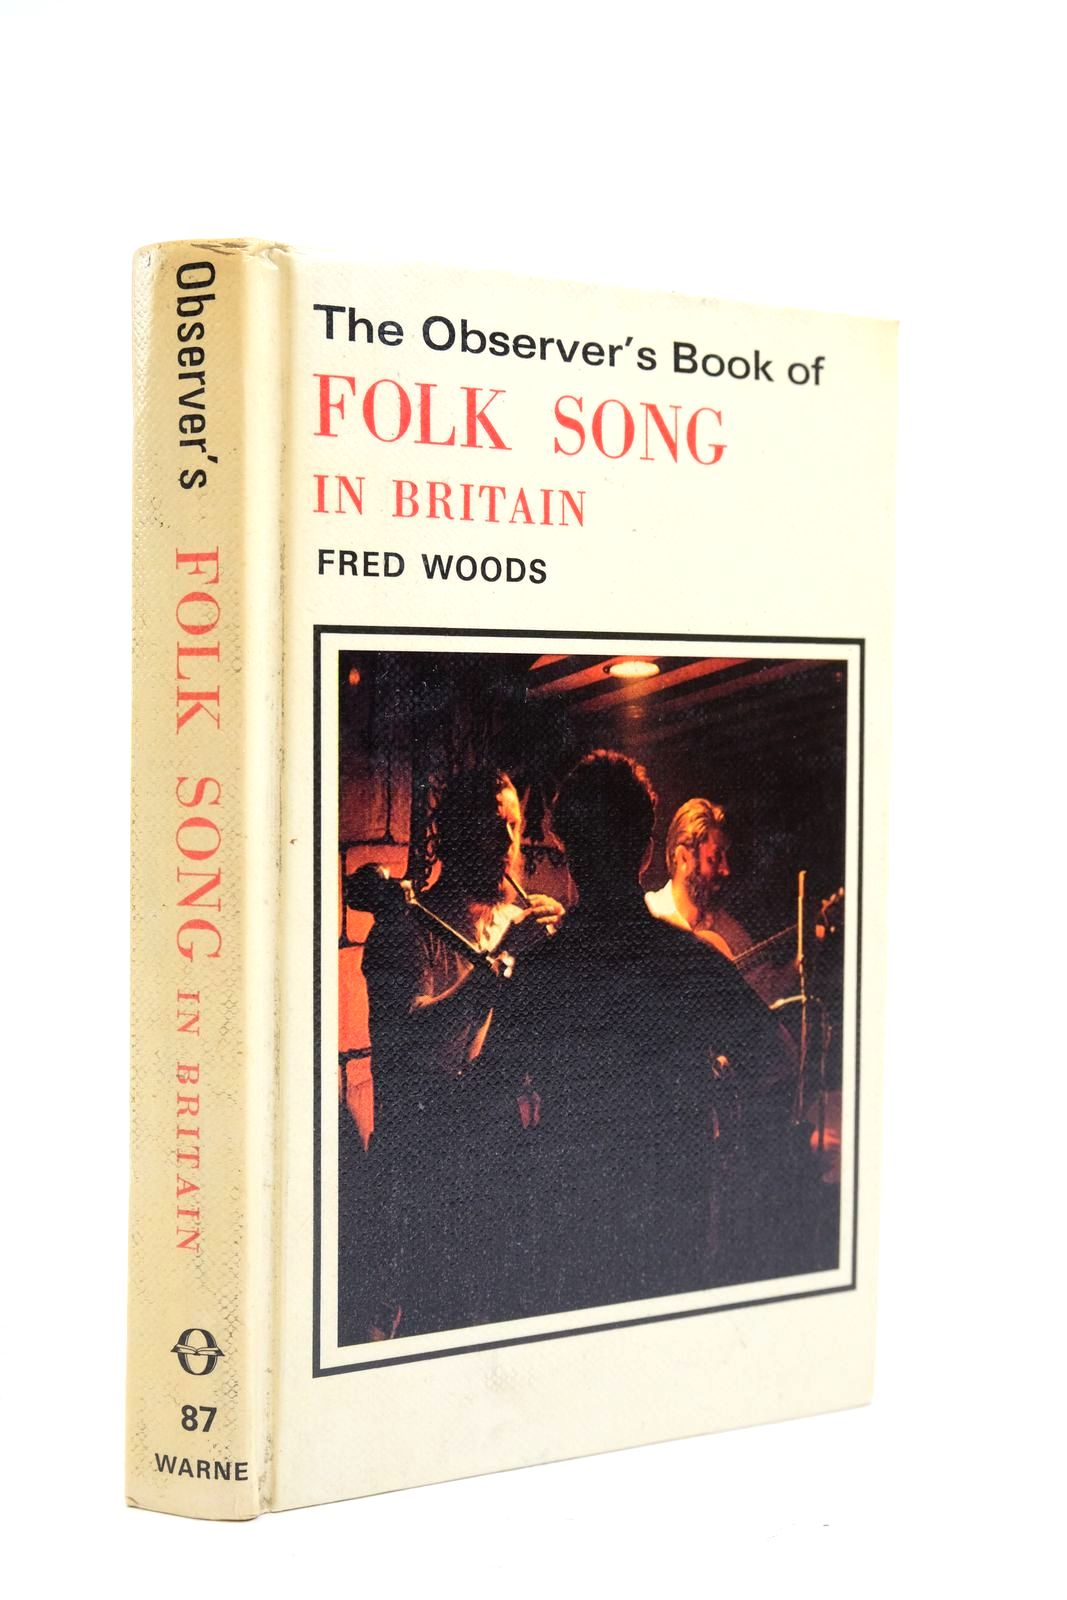 Photo of THE OBSERVER'S BOOK OF FOLK SONG IN BRITAIN written by Woods, Fred published by Frederick Warne & Co Ltd. (STOCK CODE: 2134657)  for sale by Stella & Rose's Books